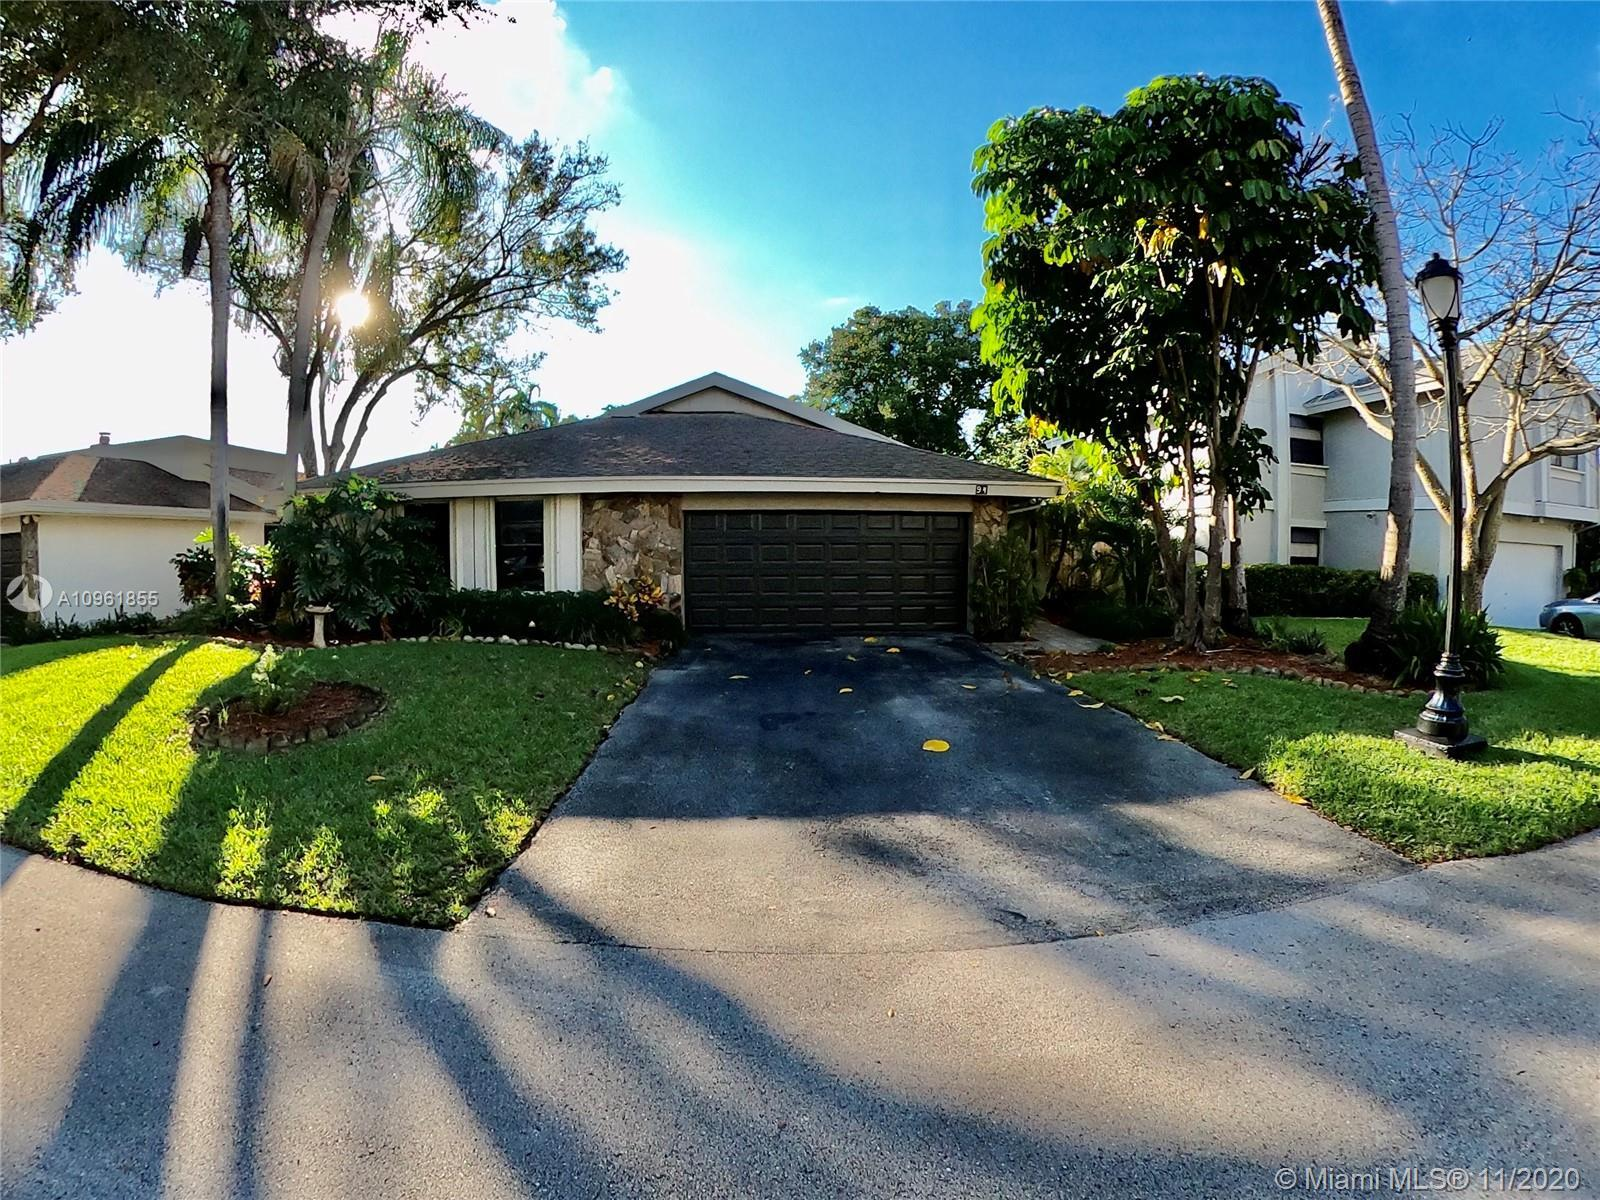 LOCATED IN THE GATED COMMUNITY OF THE GREENS OF EMERALD HILLS. 3 BEDROOM 2.5 BATH AND 2 CAR GARAGE.